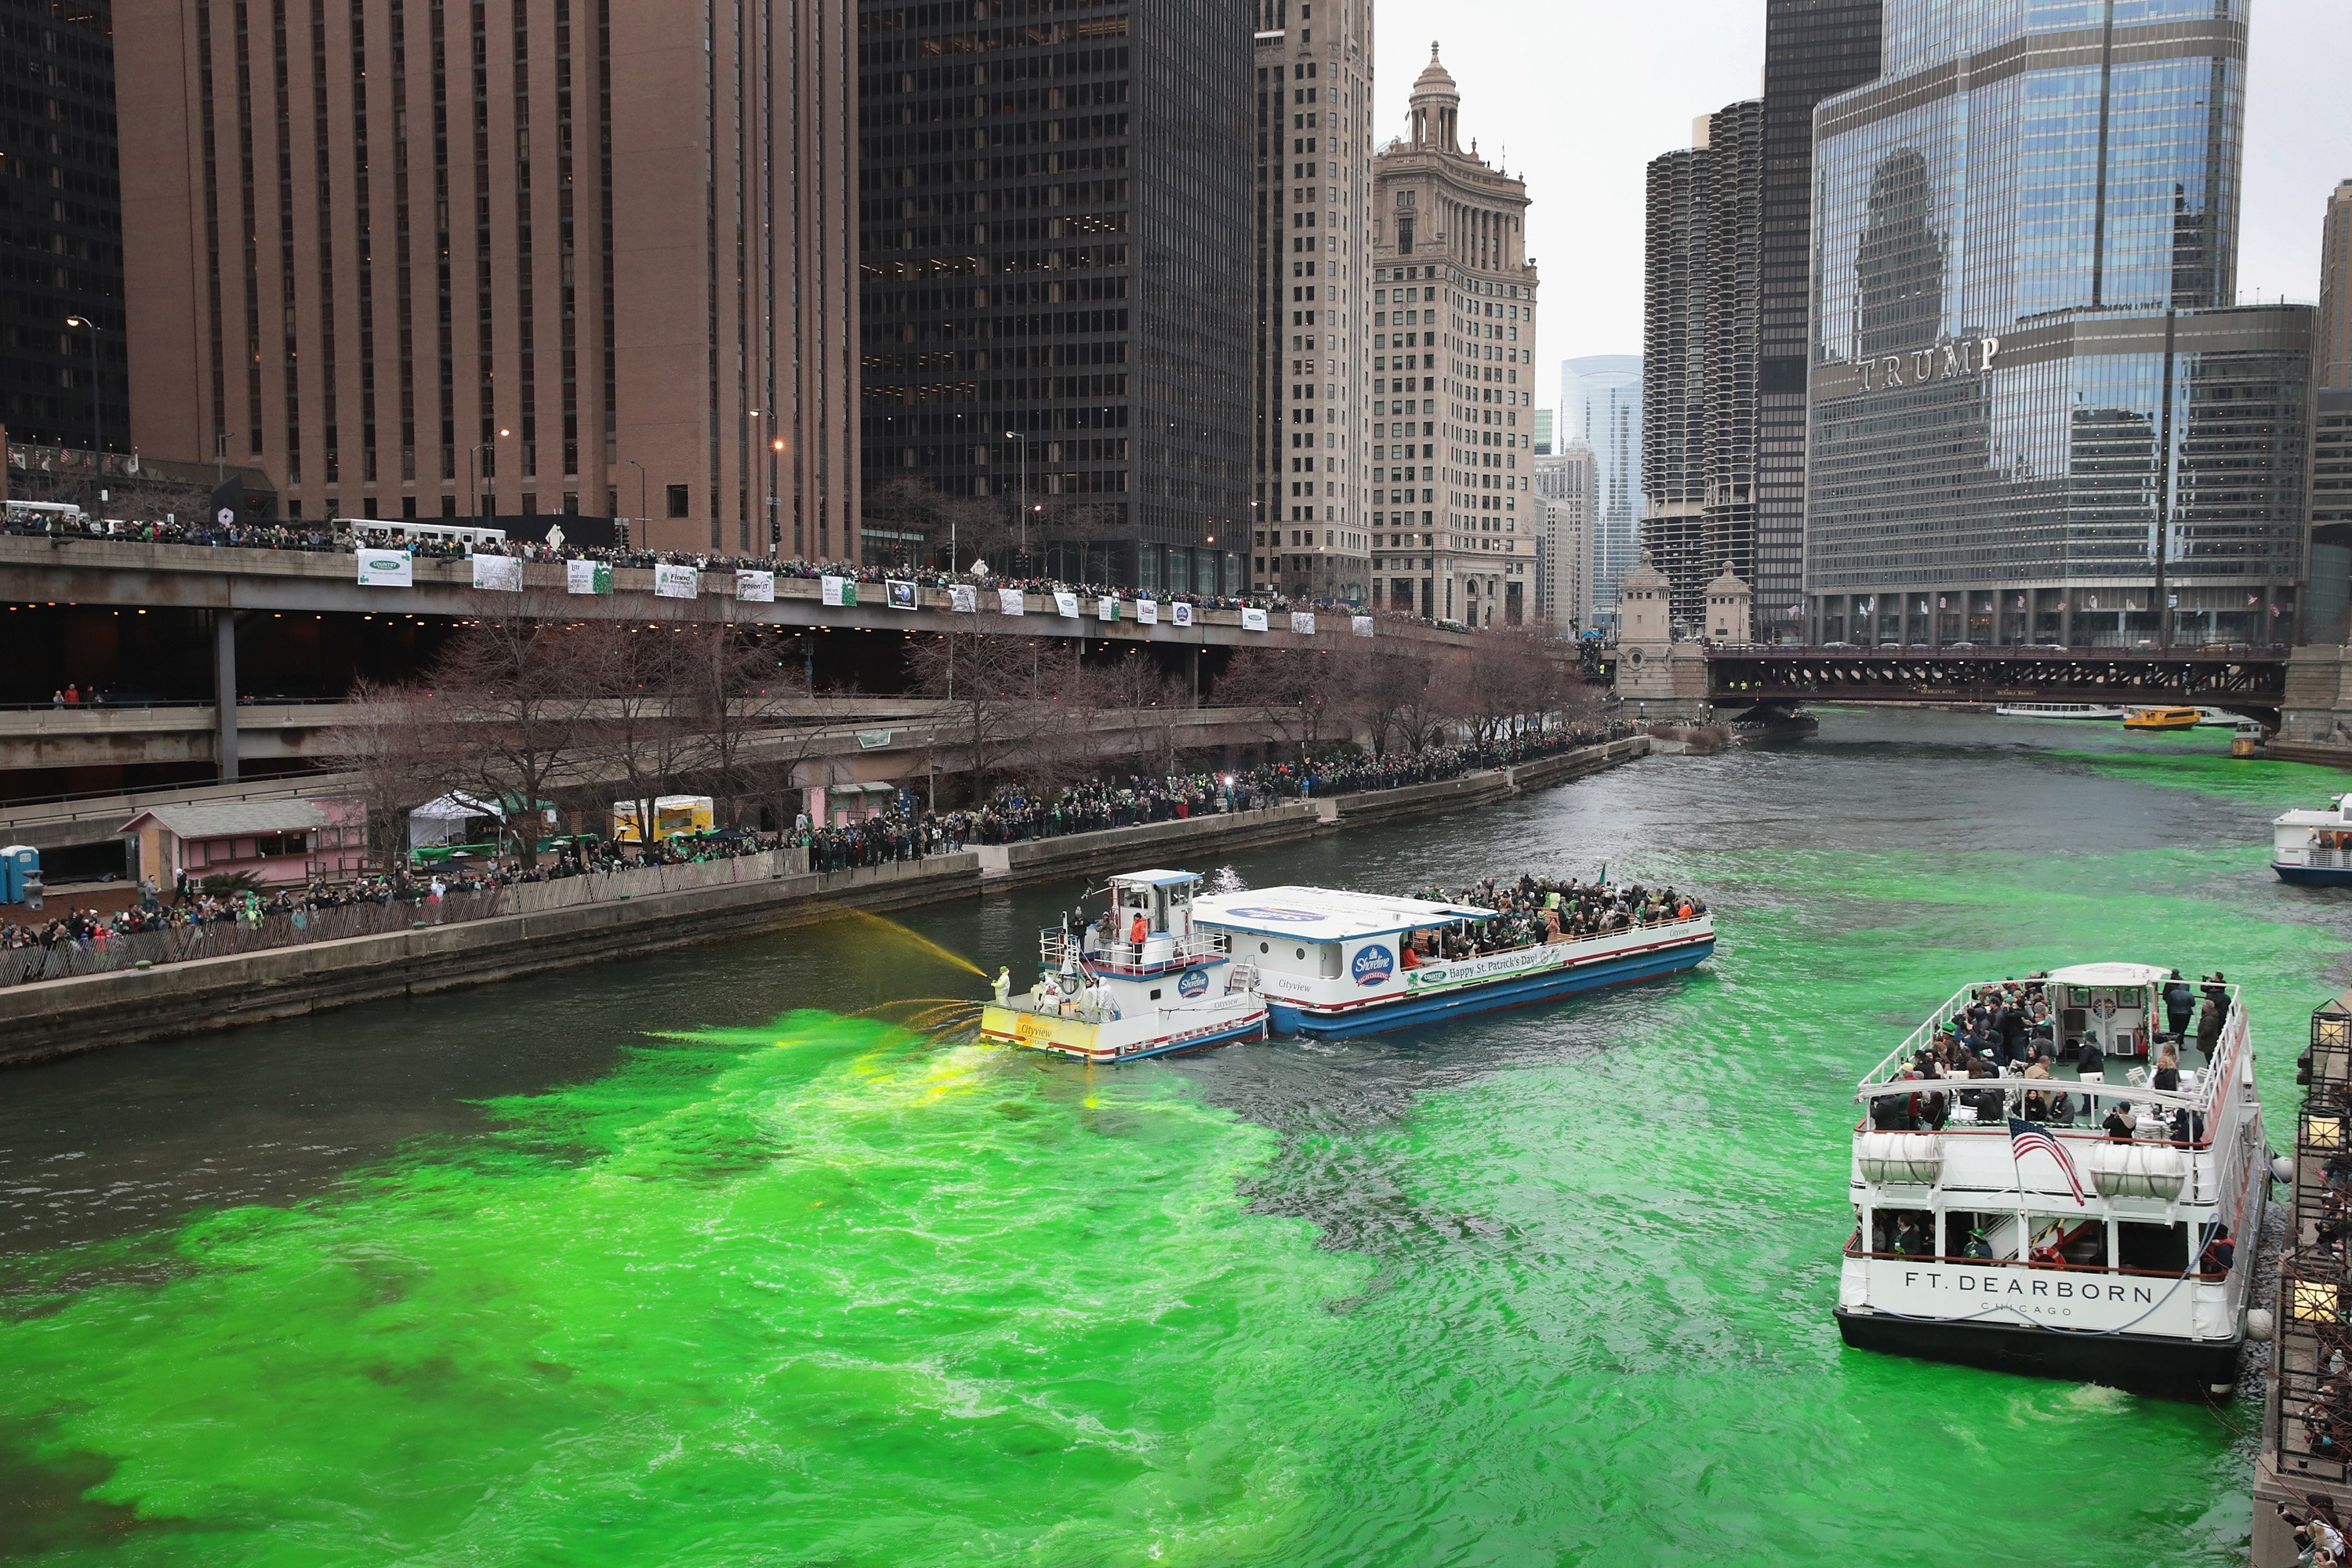 CHICAGO, IL - MARCH 17: Members of the local plumber's union dye the Chicago River green in celebration of St. Patrick's Day (Photo by Scott Olson/Getty Images)